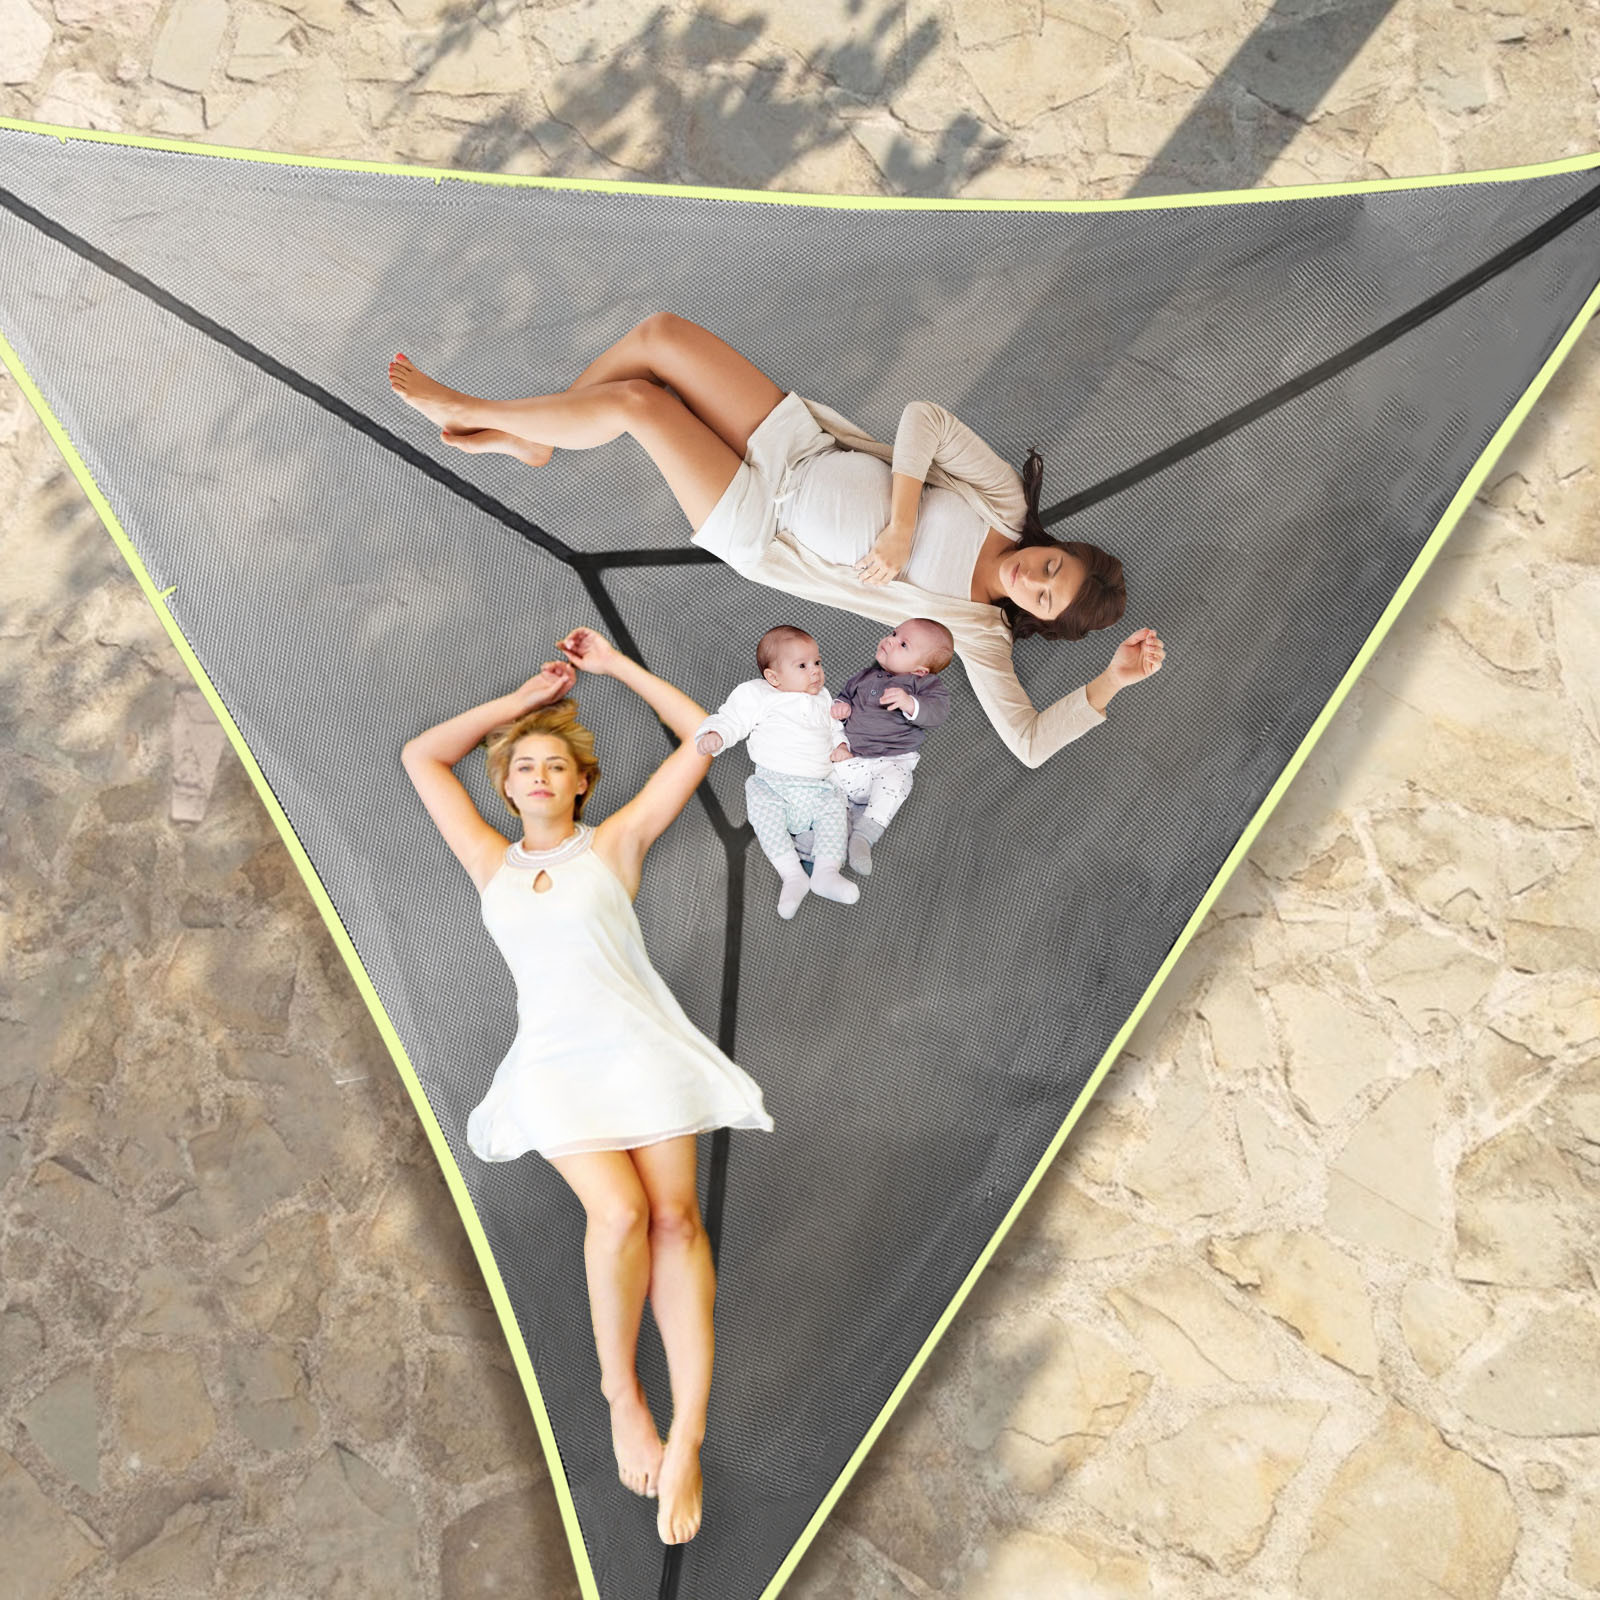 3-Person Tree Hammock - Patented 3 Point Design, Heavy Duty Ratchets and Straps Aerial Mat -Hammock Tree House Air Sky Tent